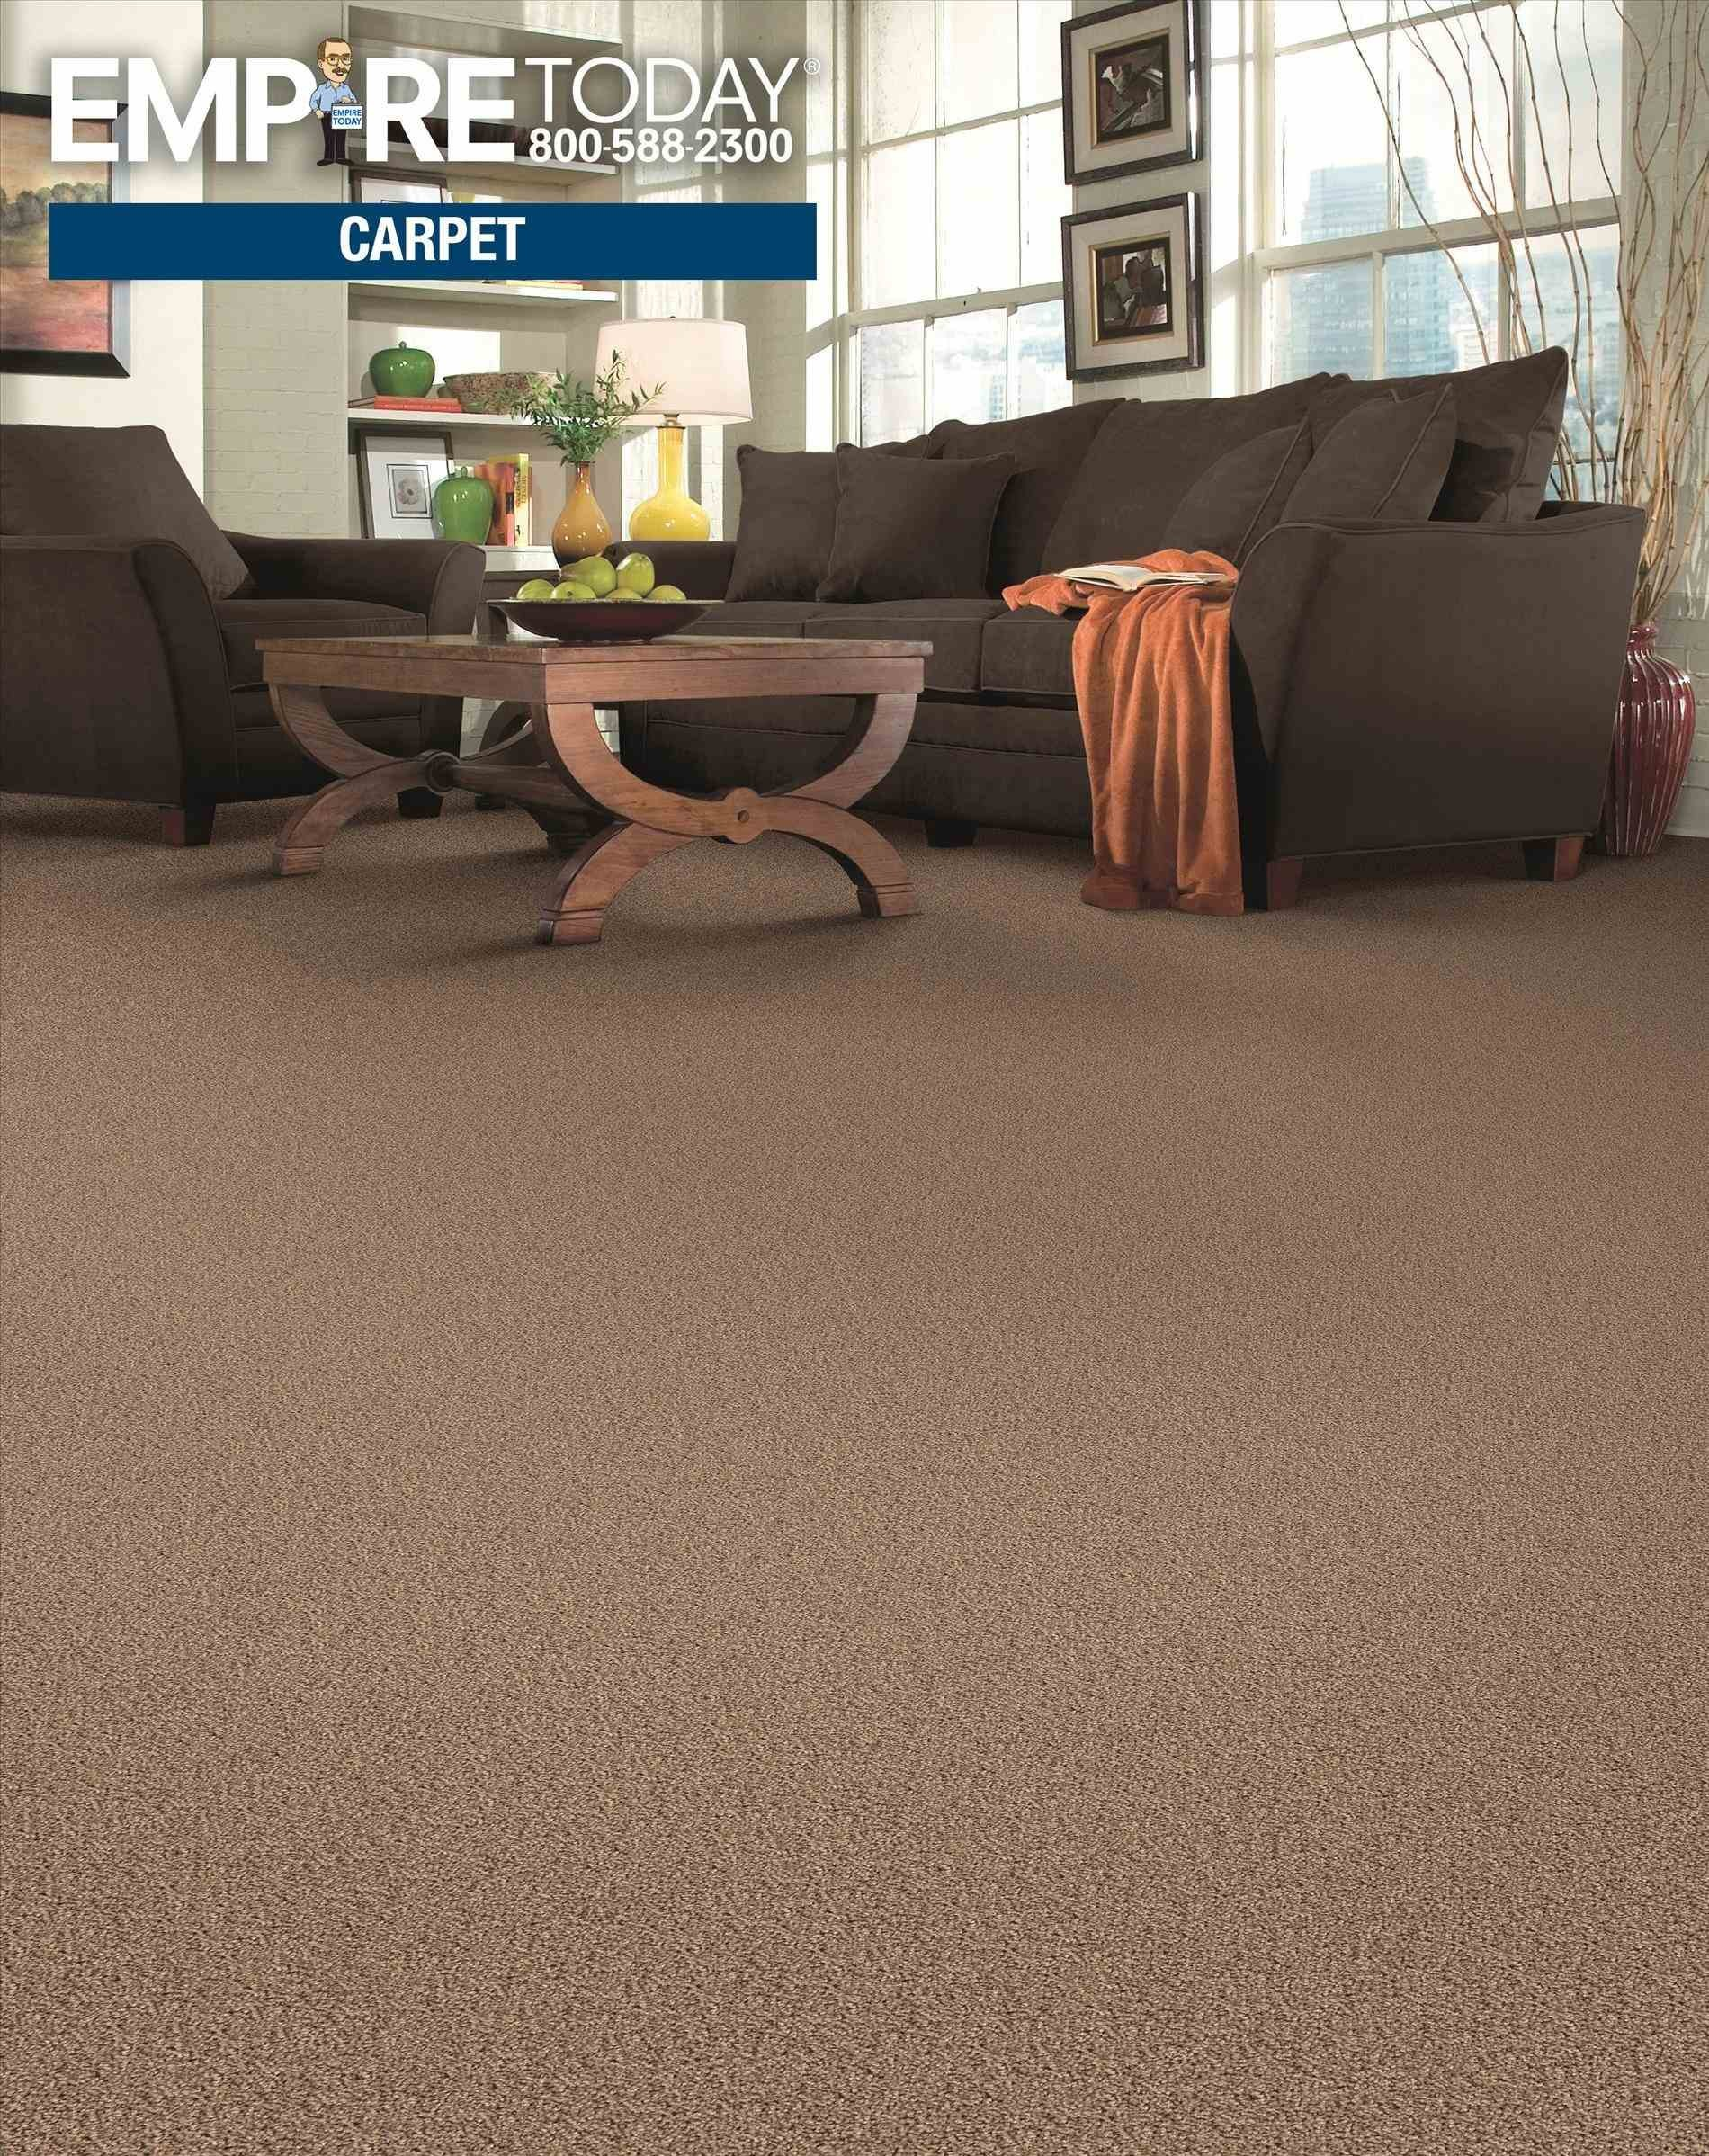 How Much Is Carpet Installation